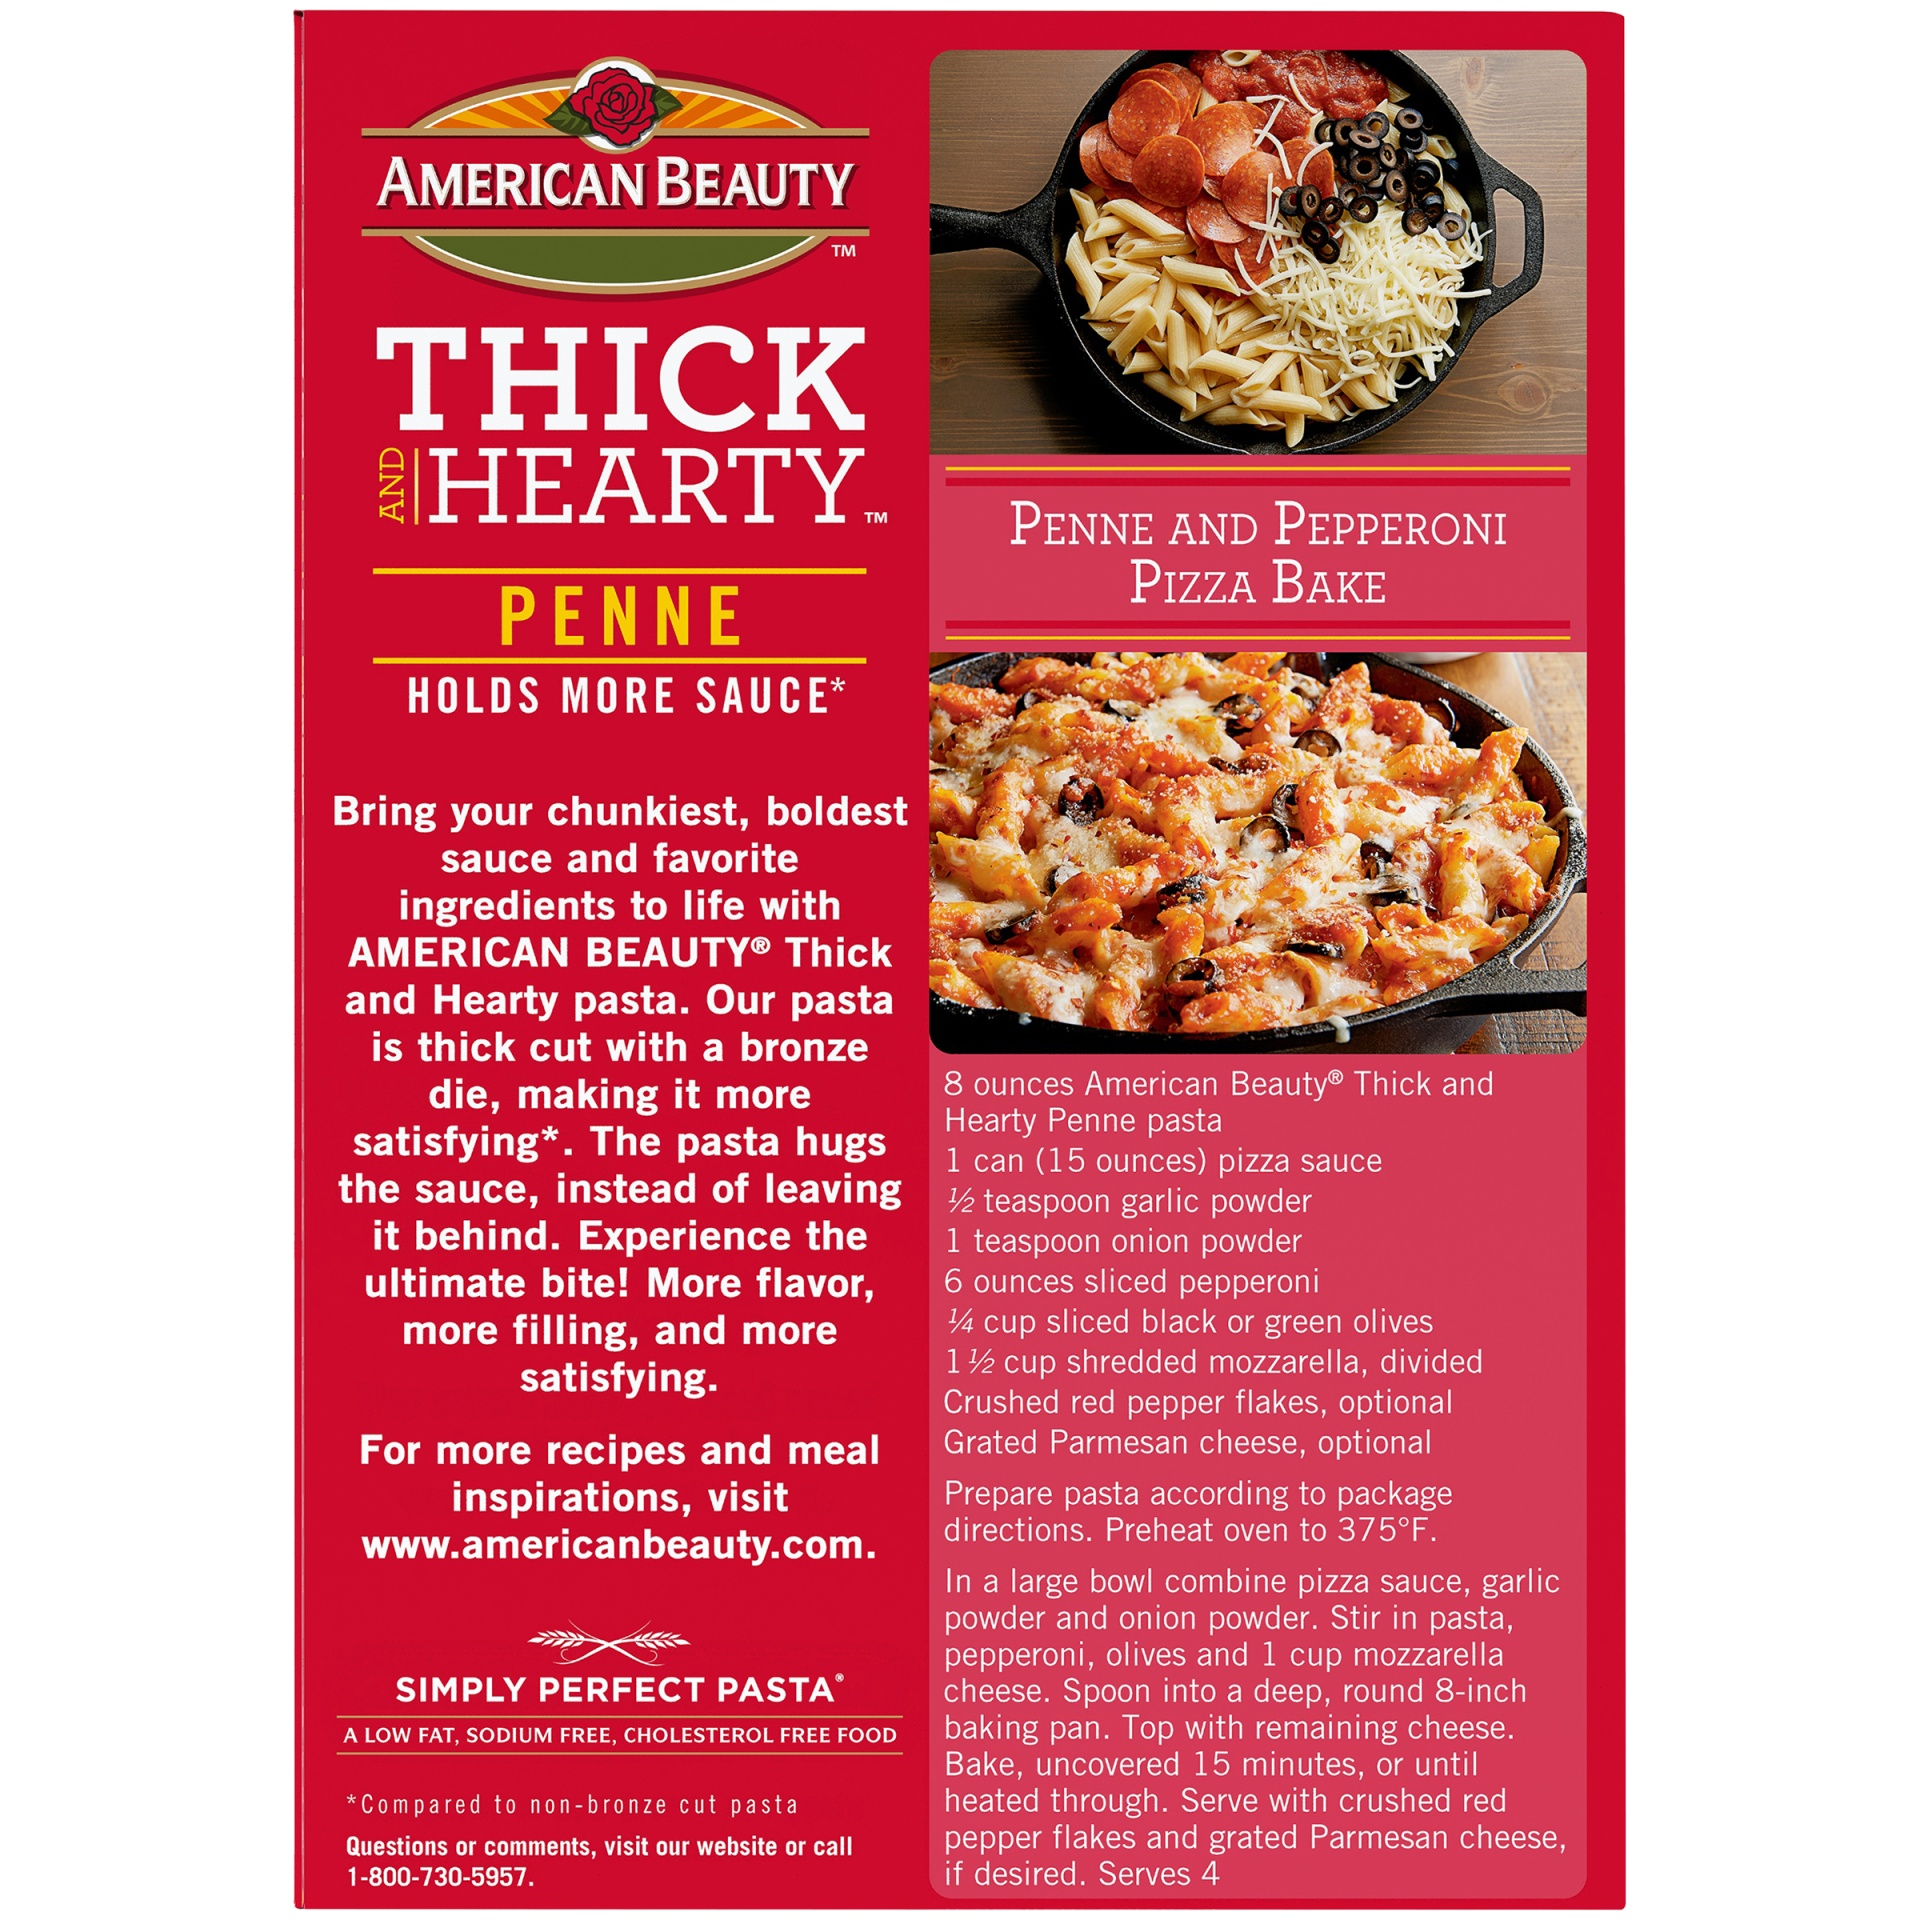 slide 6 of 8, American Beauty Thick And Hearty Penne Pasta,